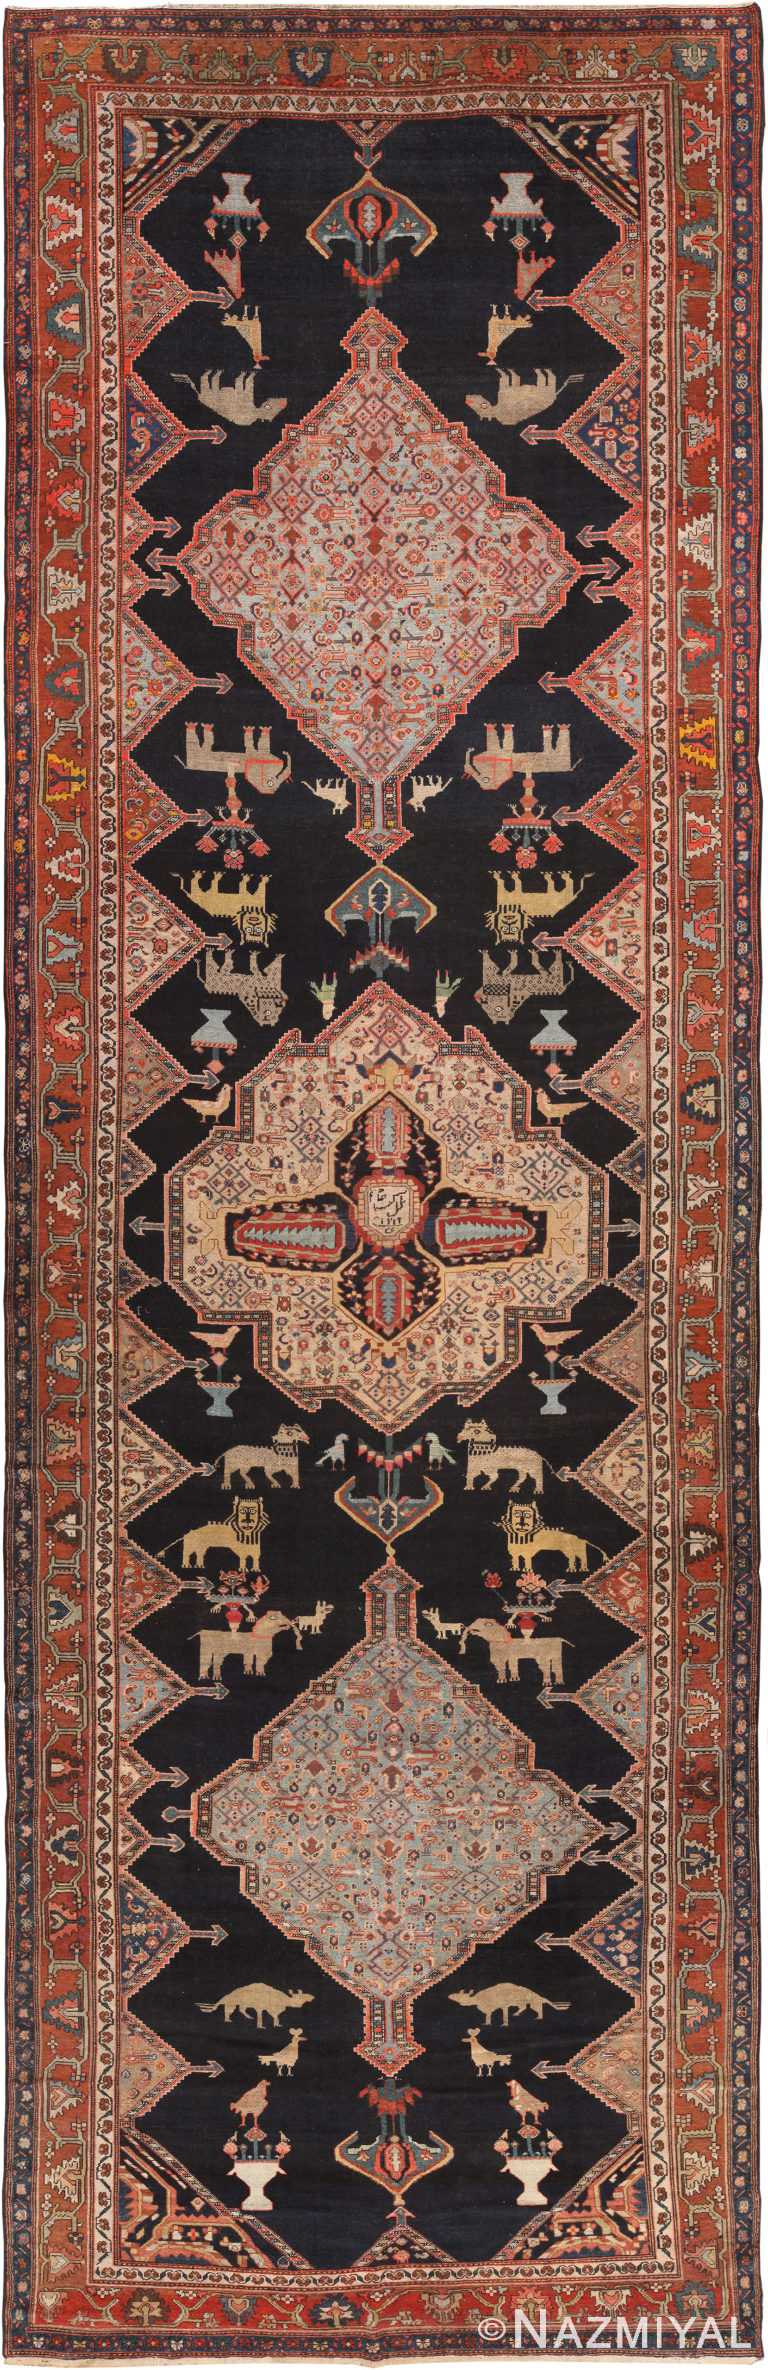 Animal Design Fine Gallery Size Antique Persian Senneh Rug 70795 by Nazmiyal Antique Rugs